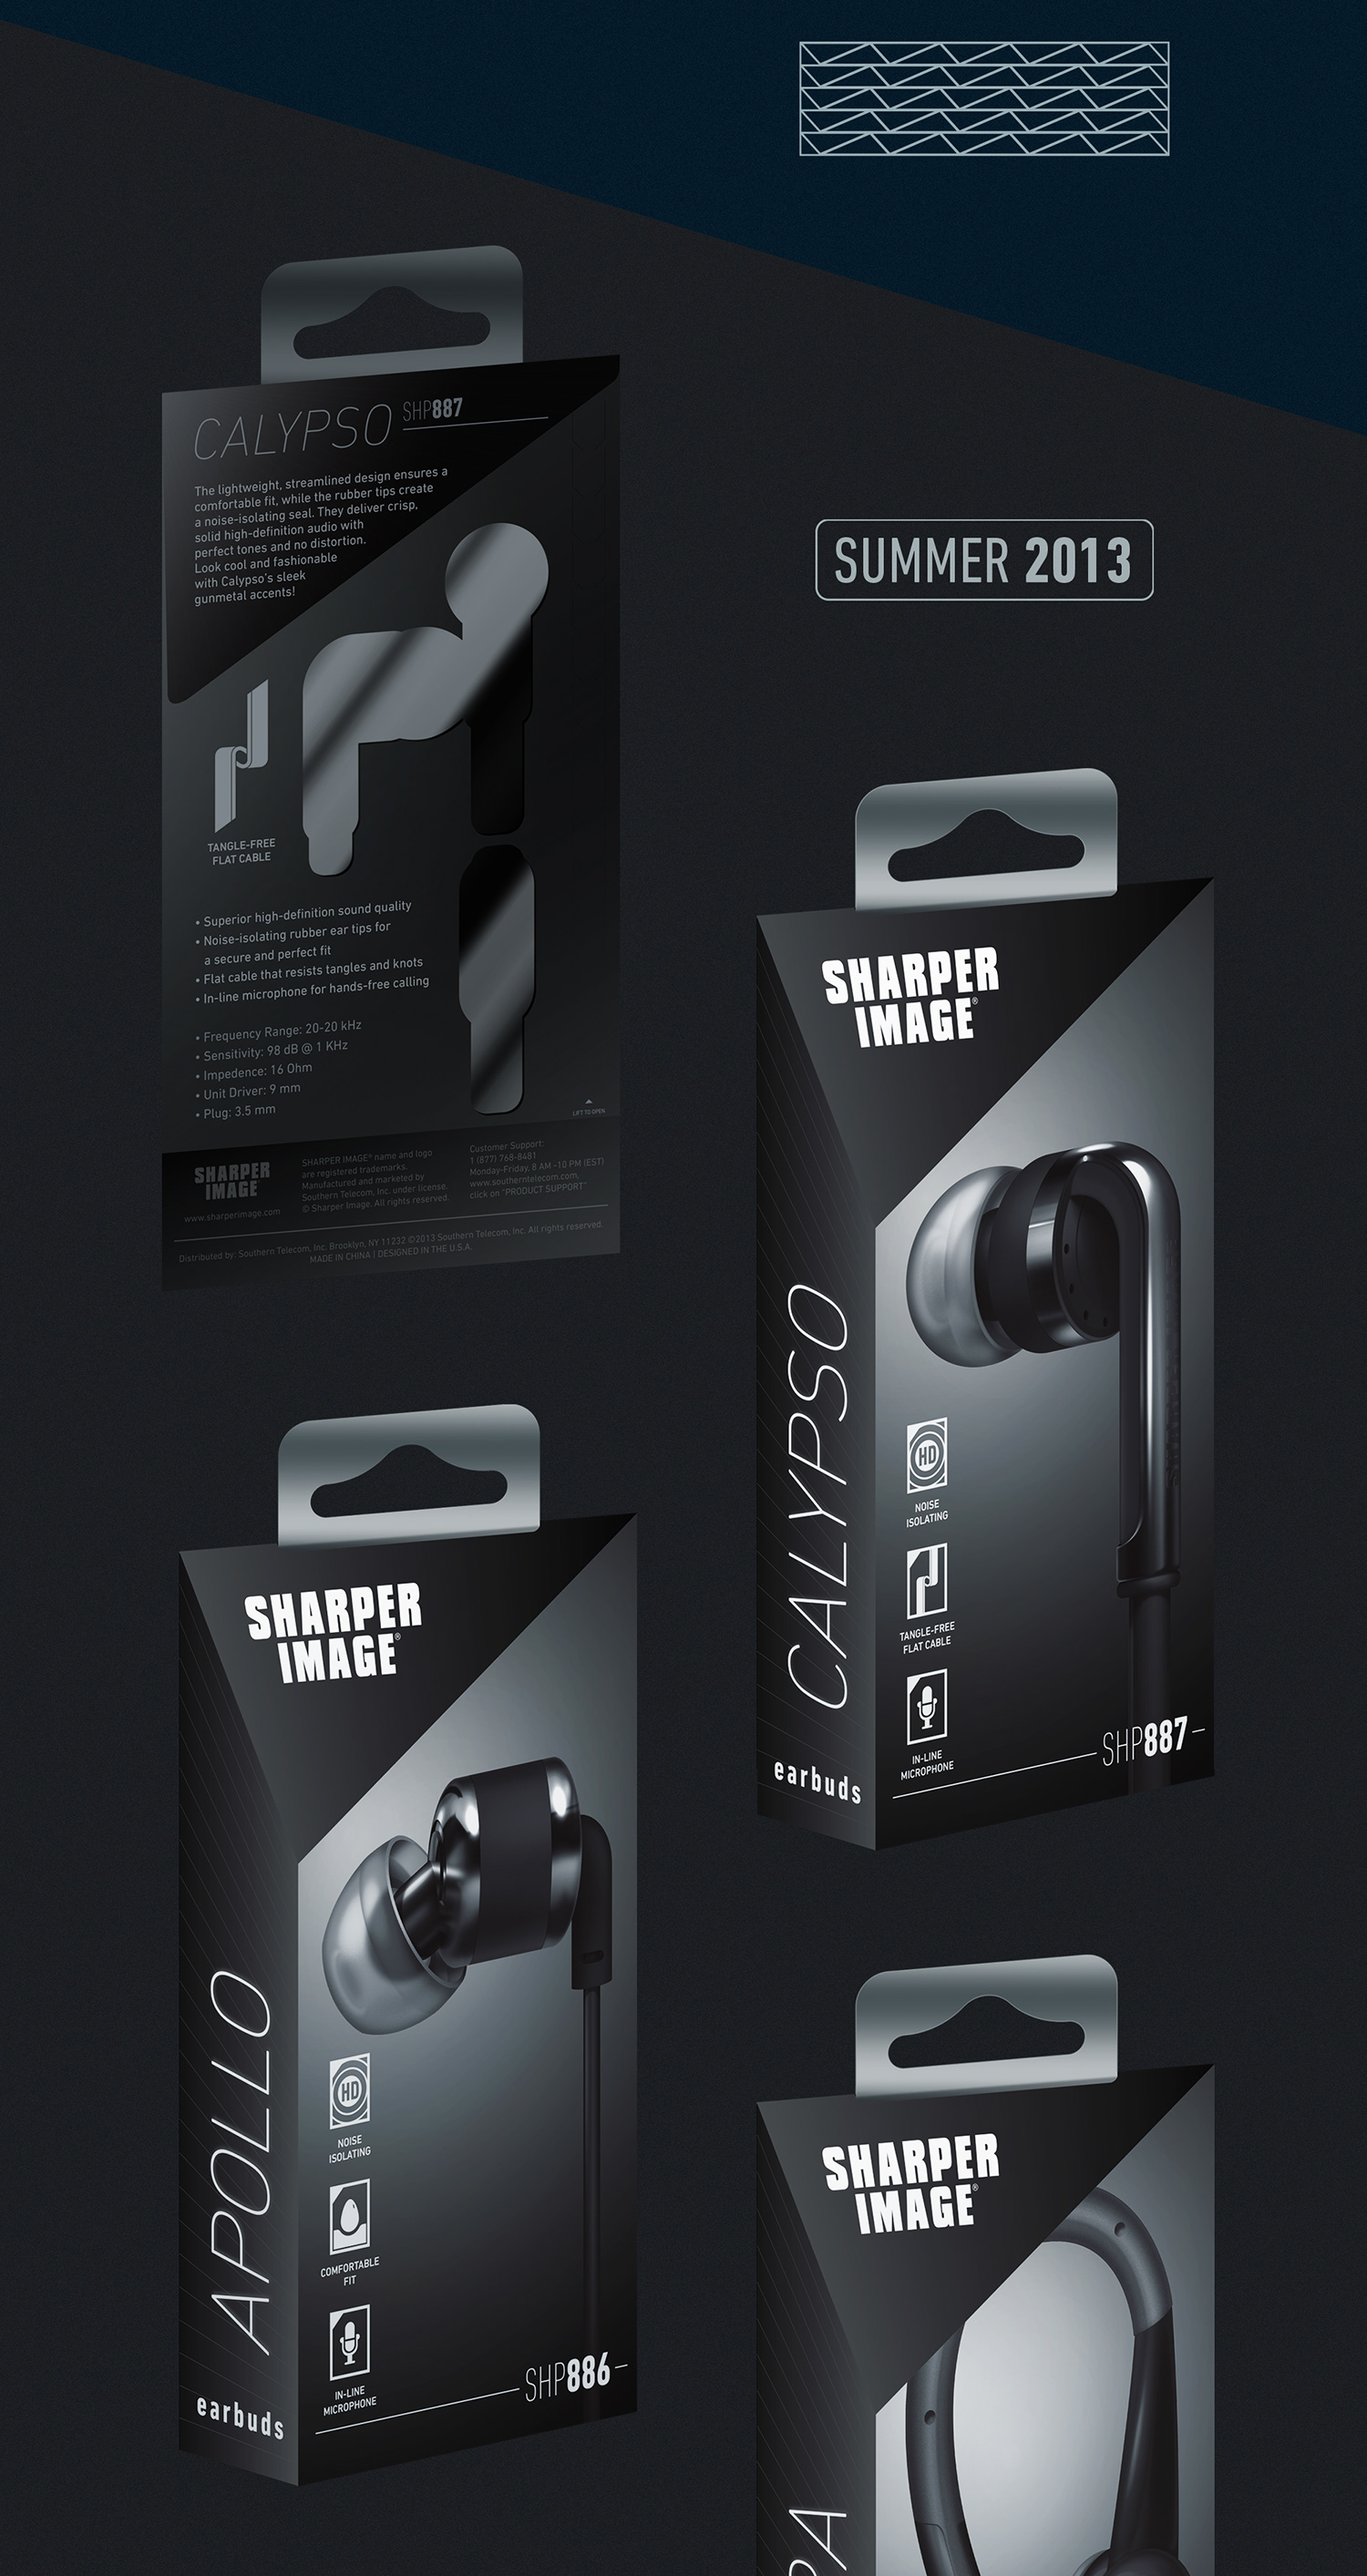 SHARPER IMAGE - Phase 1 on Behance